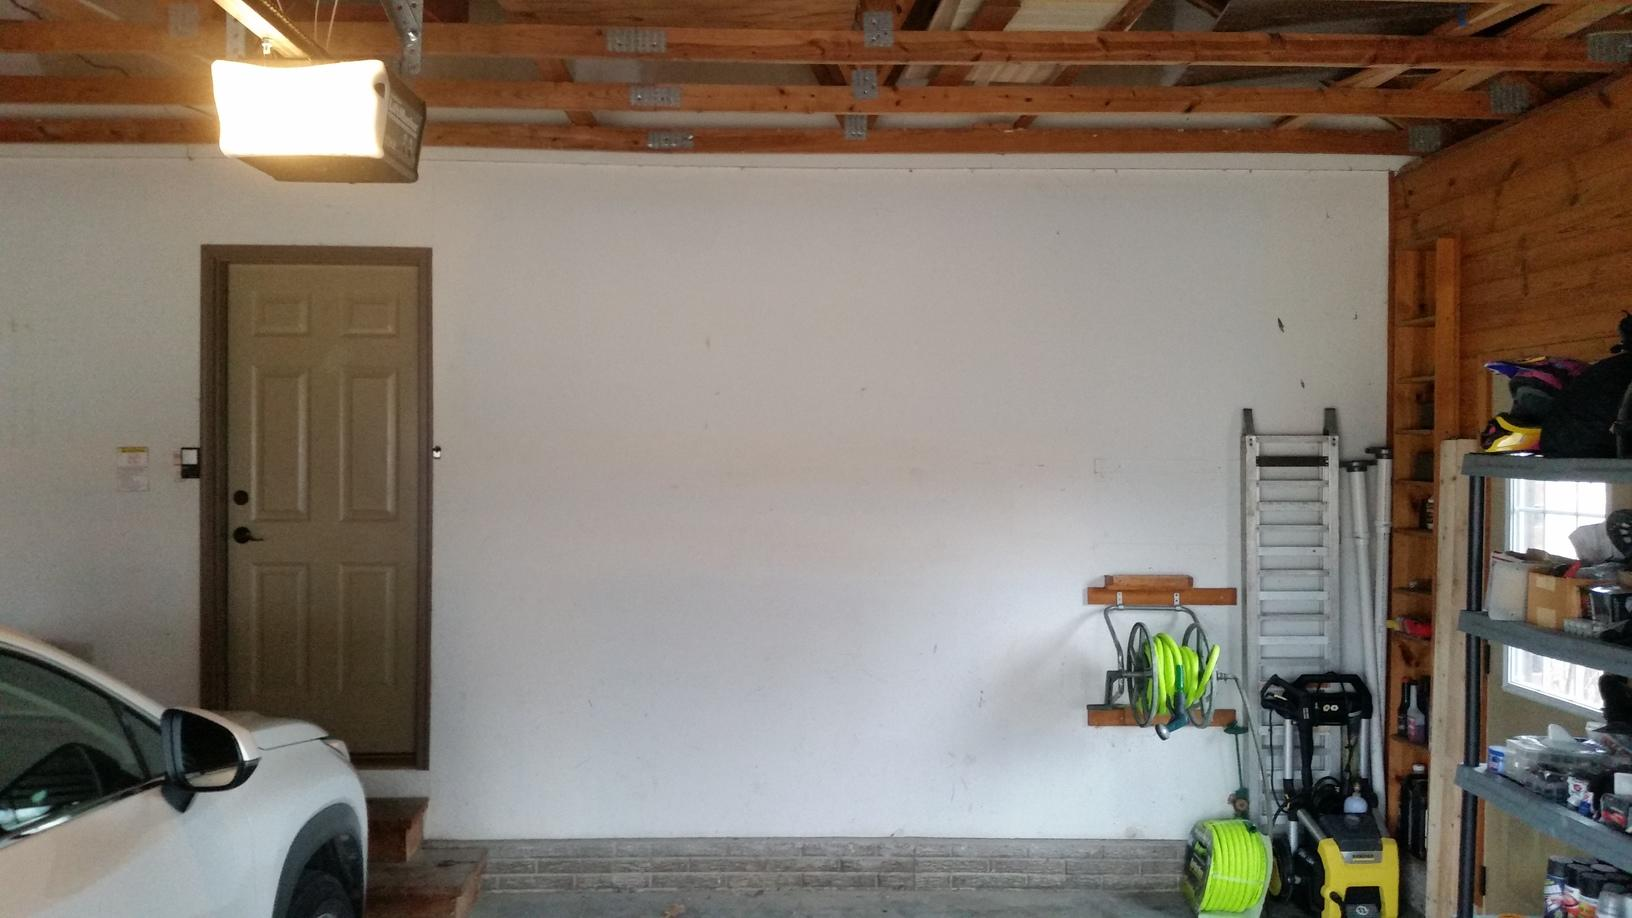 GArage wall before the Radon Mitigation System is installed